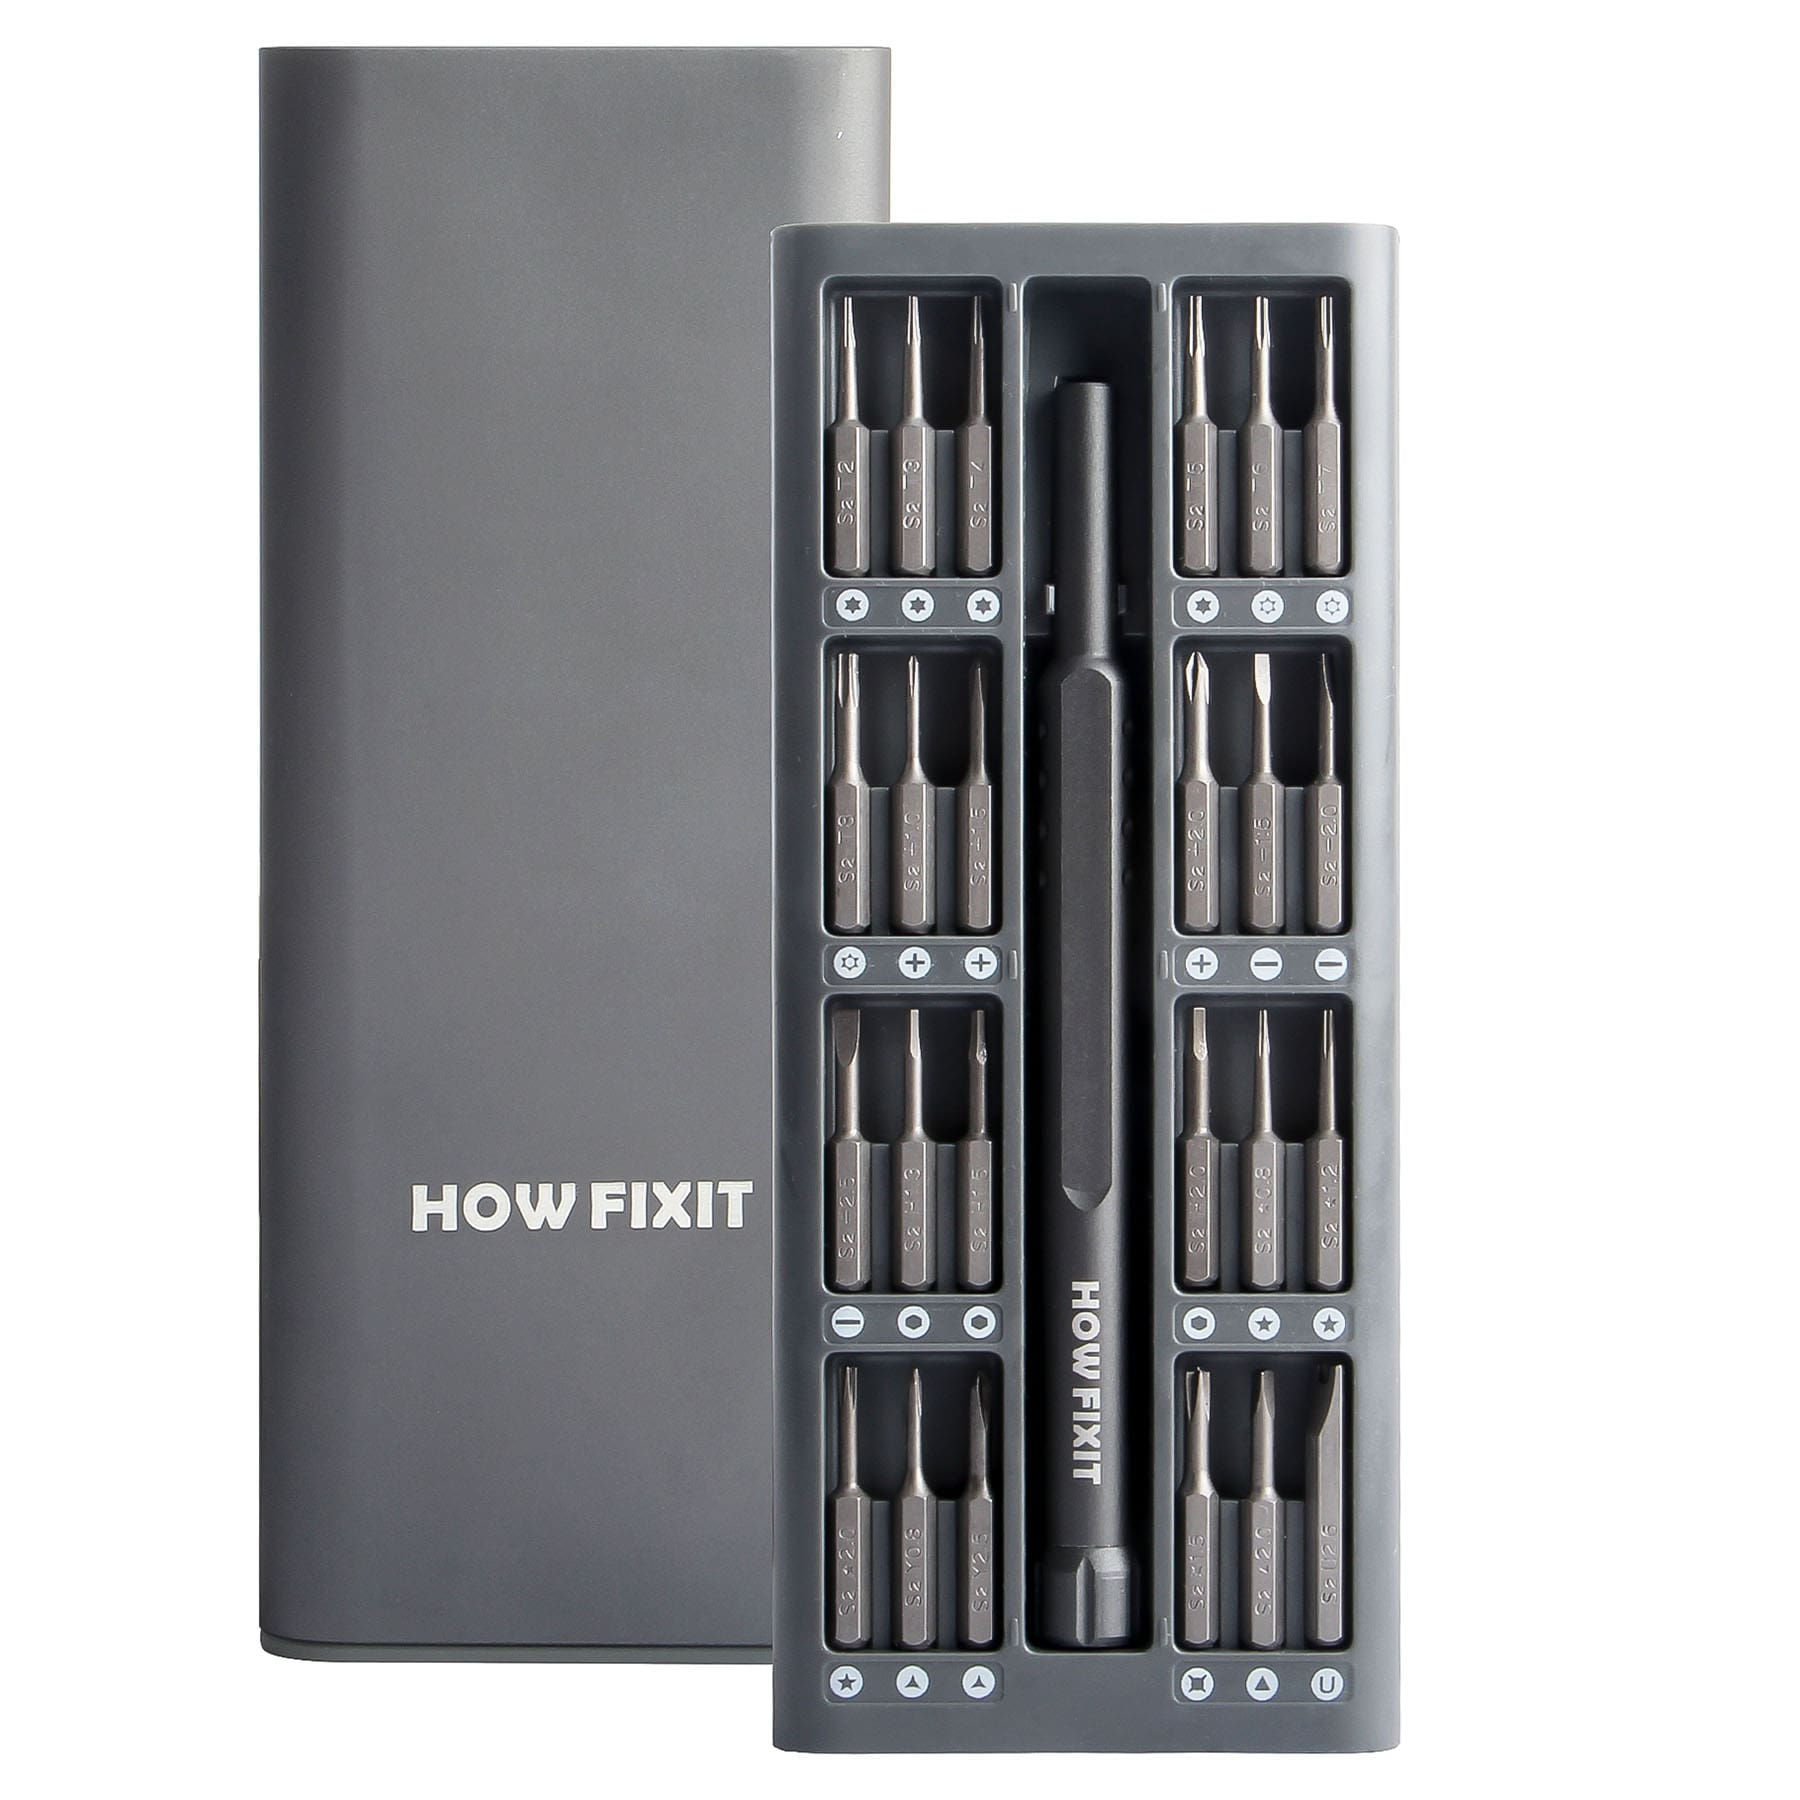 How-Fixit PRO 24 bit Screwdriver Set HFIT ONE